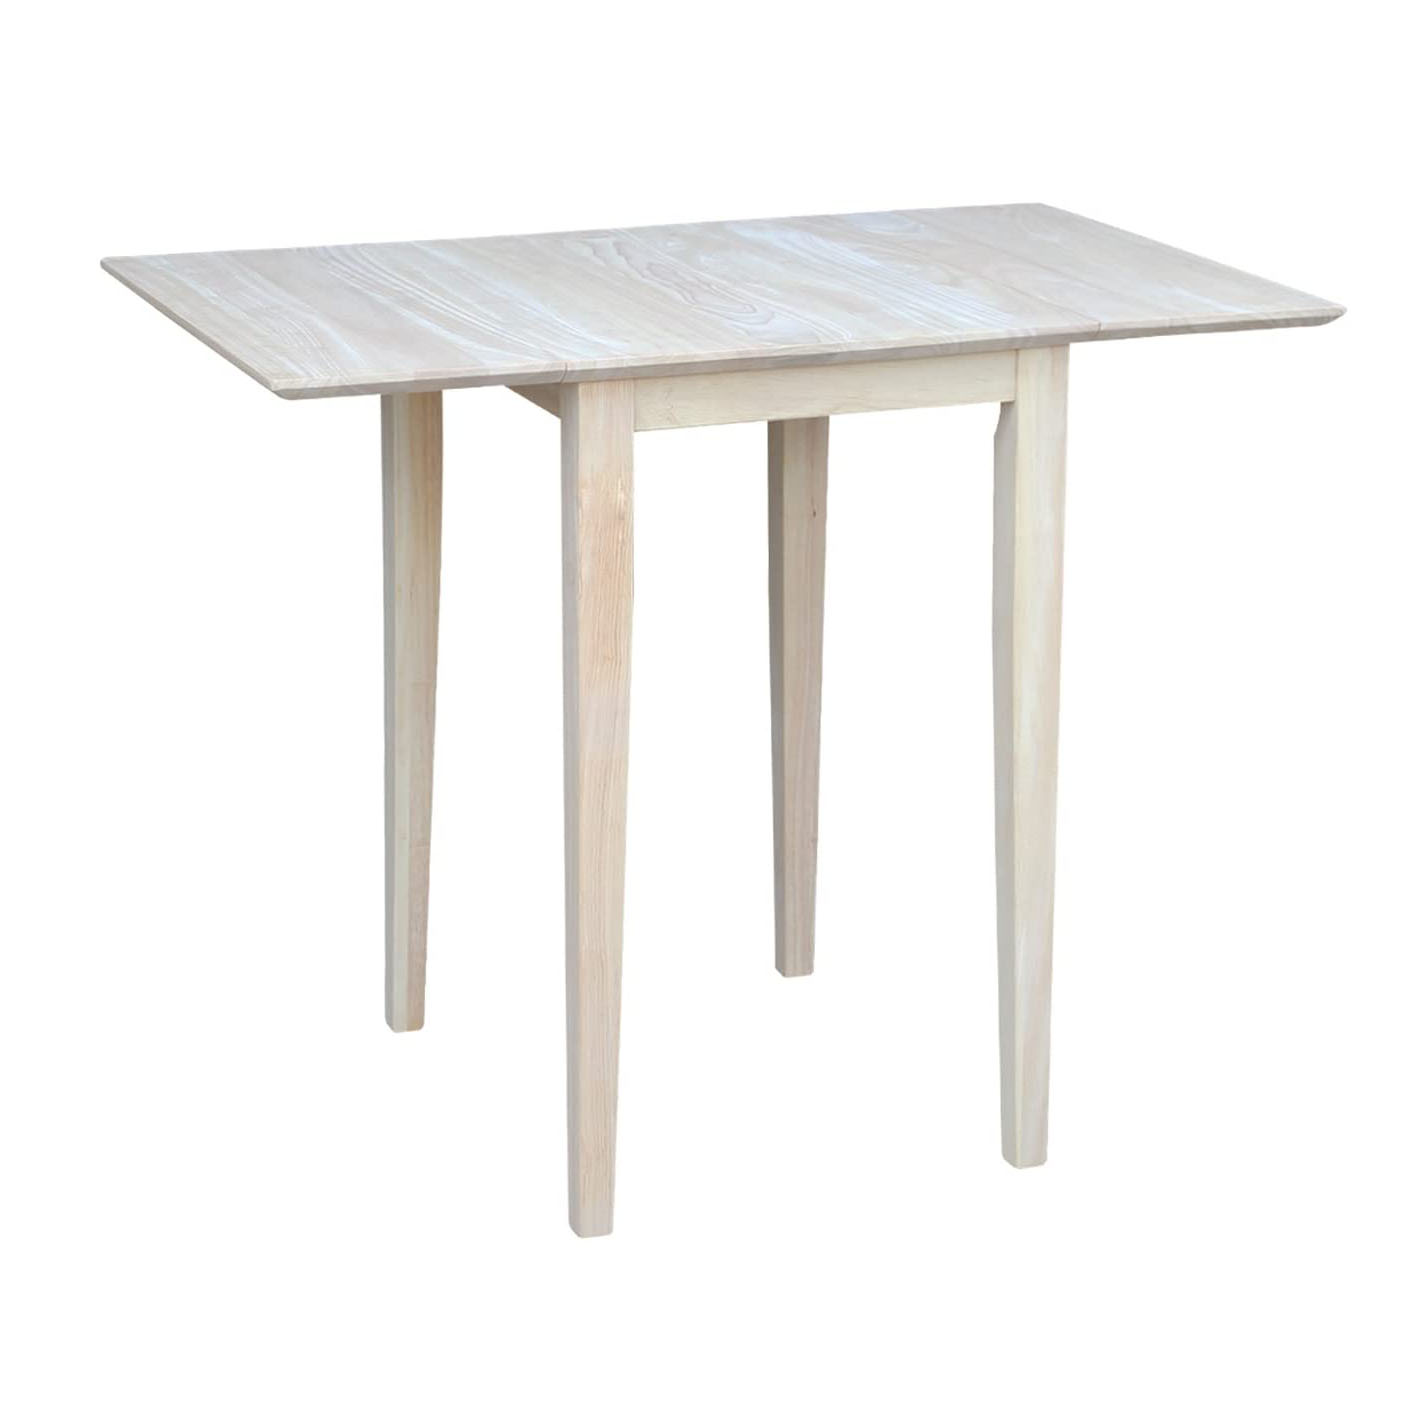 10 Best Stylish Drop Leaf Dining Tables Apartment Therapy